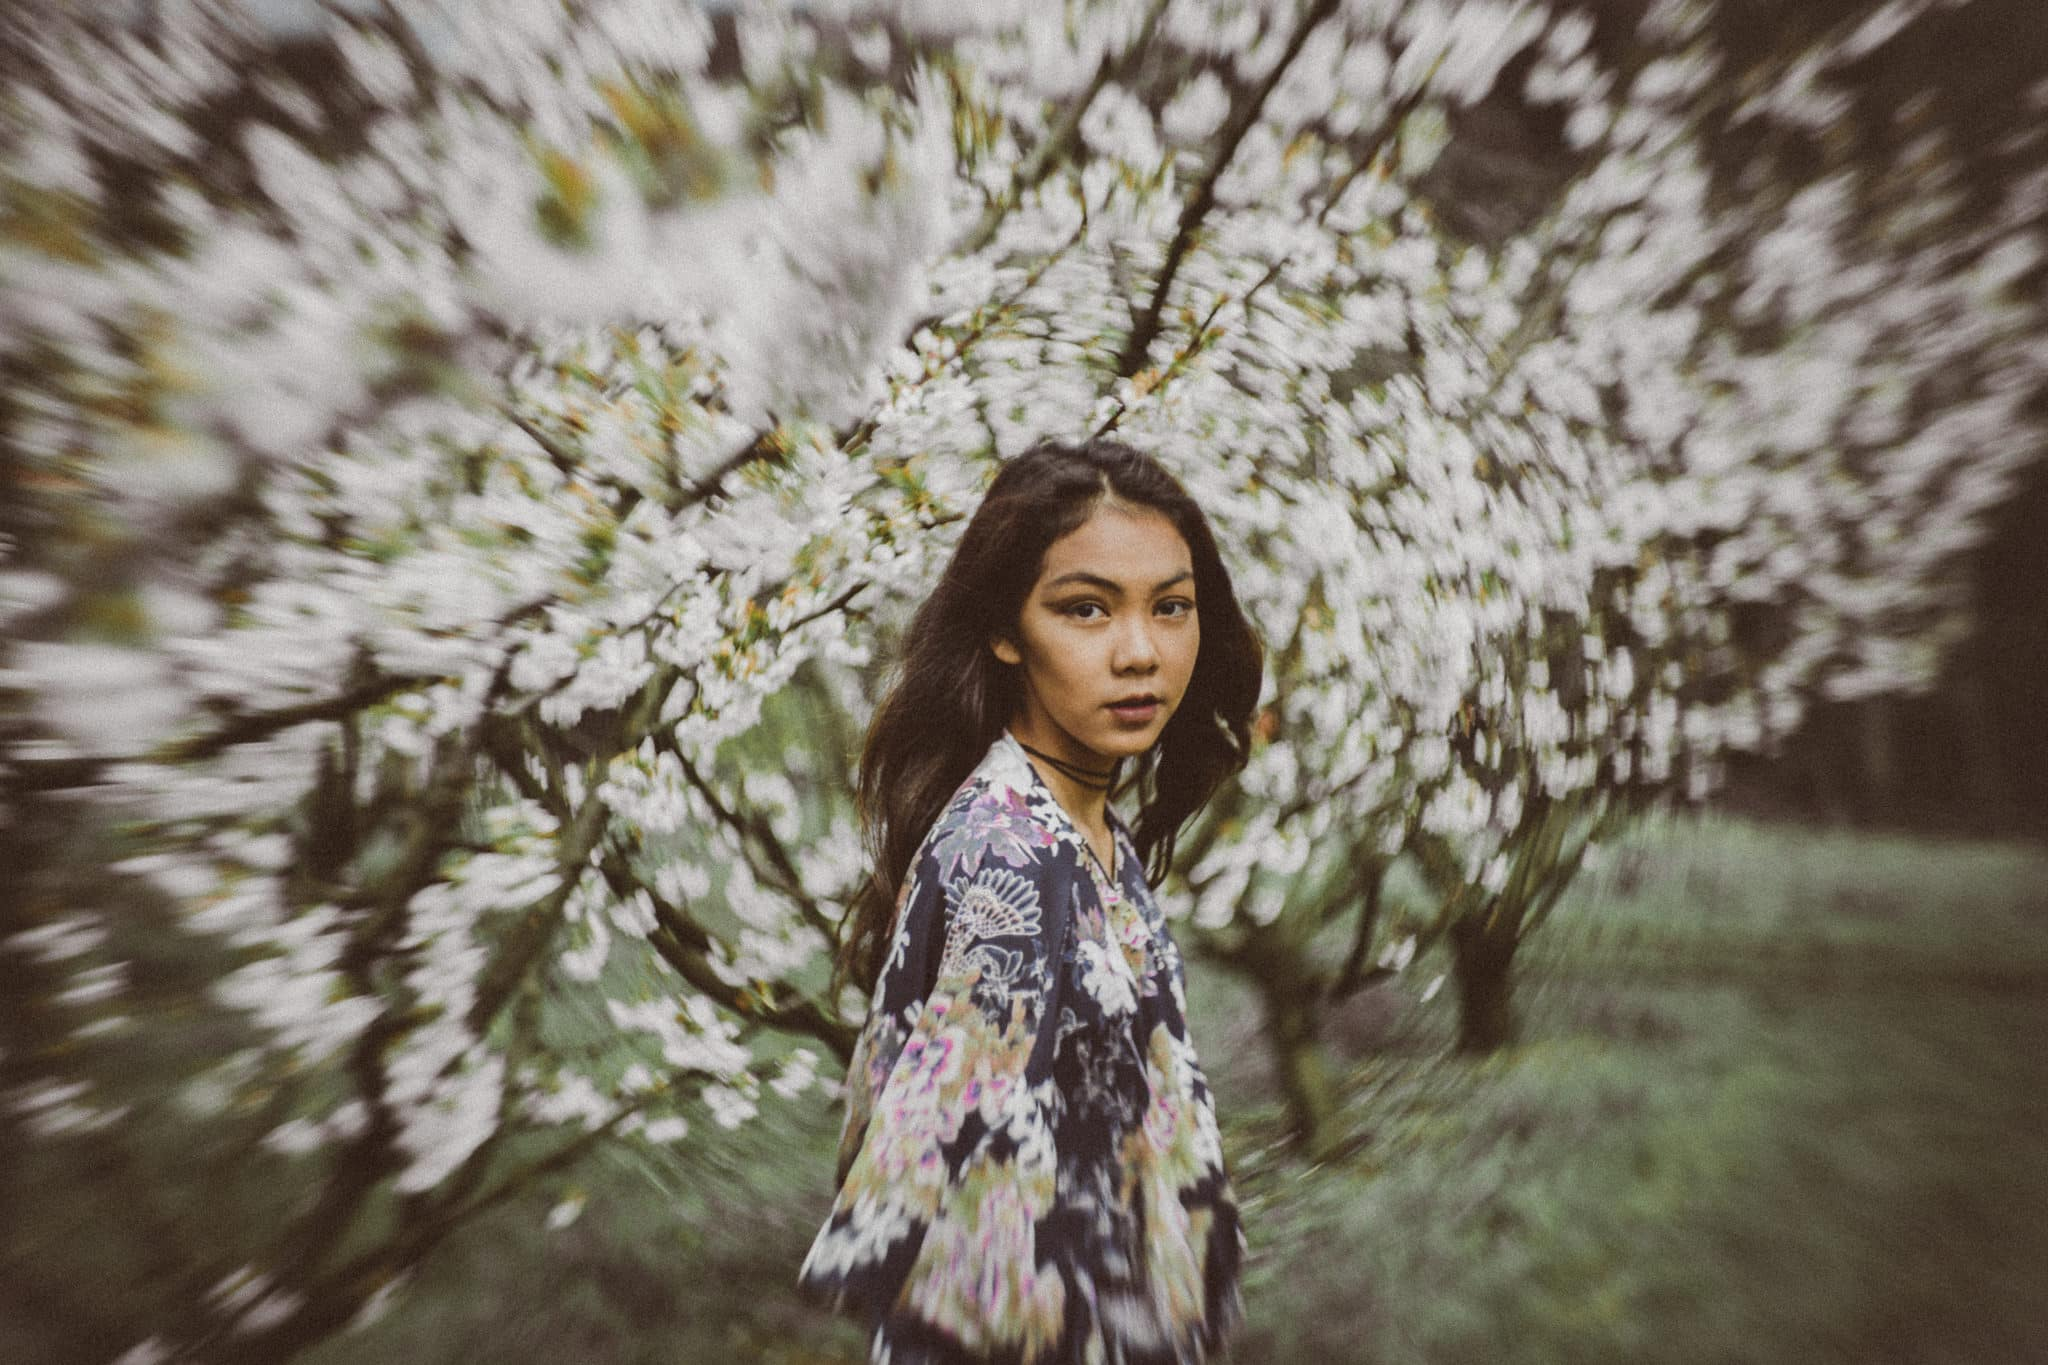 fine art fashion and wedding photography - styled shoot - lomography art lenses - petzval